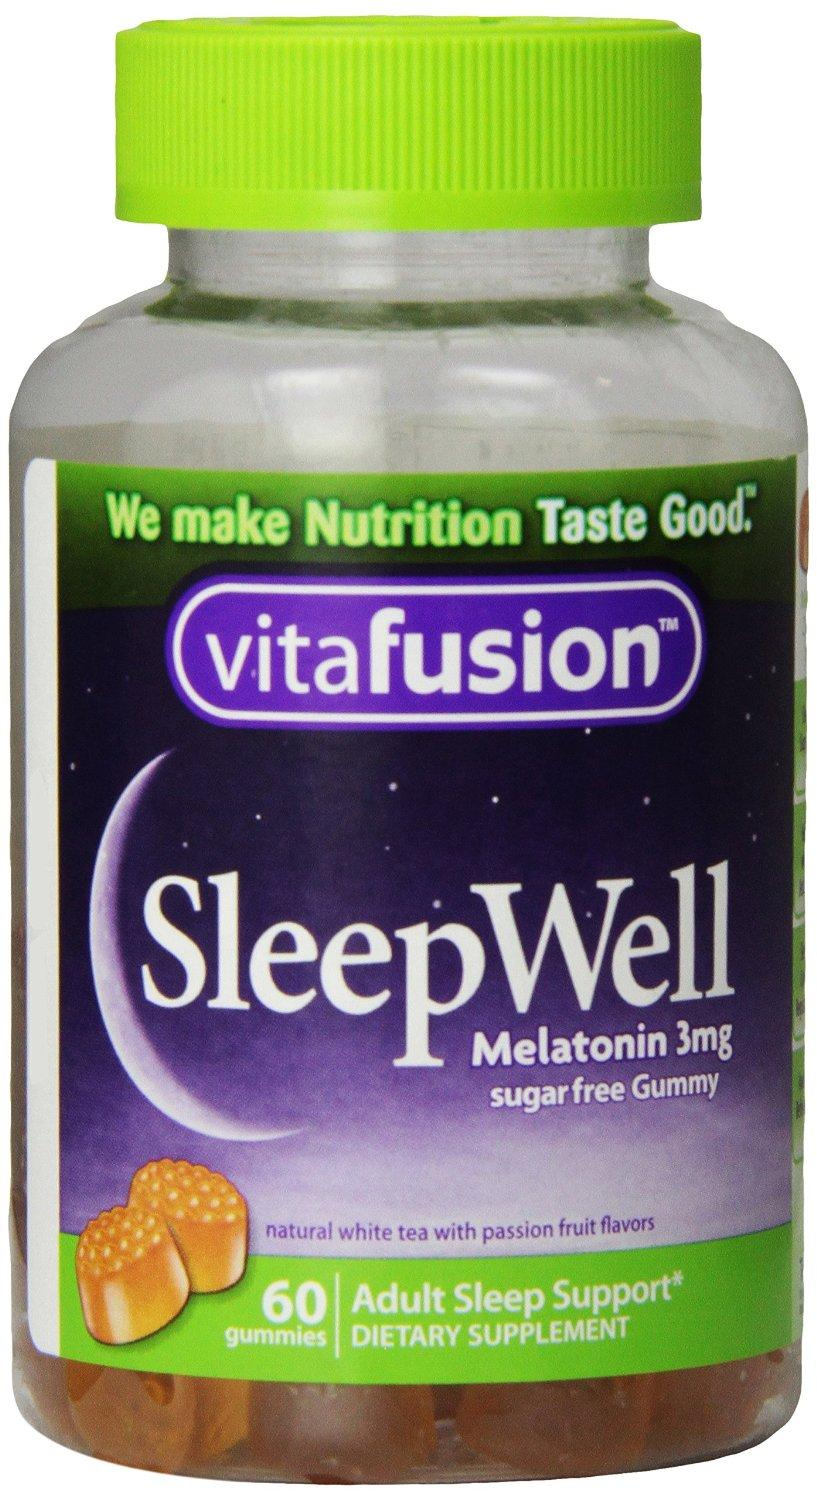 Vitafusion Sleep Well Gummy Vitamins, 60 Count (Pack of 3)